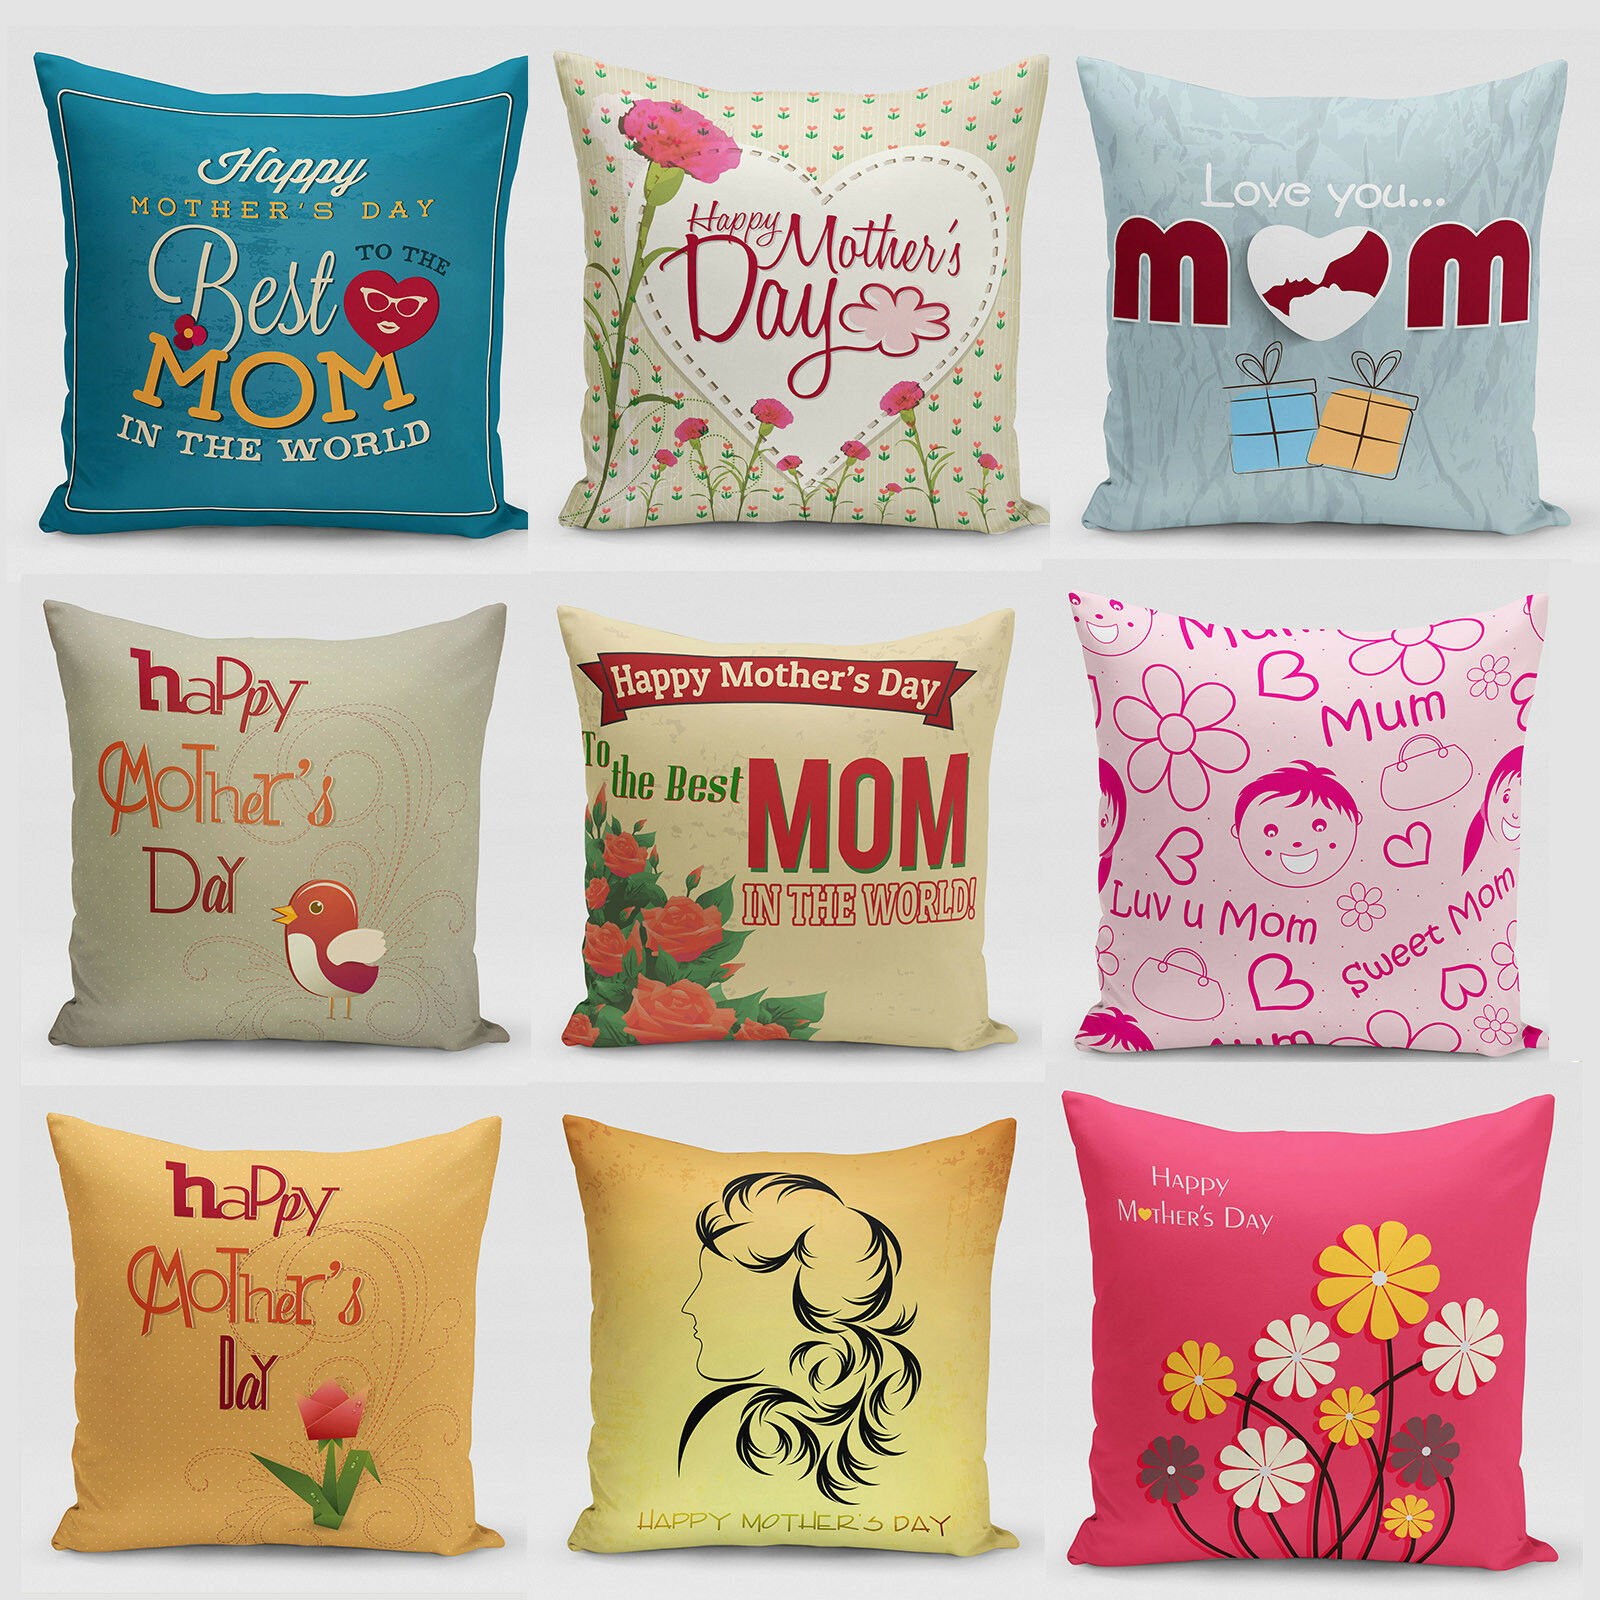 d0878e37677 Details about Flower-tongue of Mother's Day Couch Pillow Cases for sofa  Cushion Cover Mom Gift